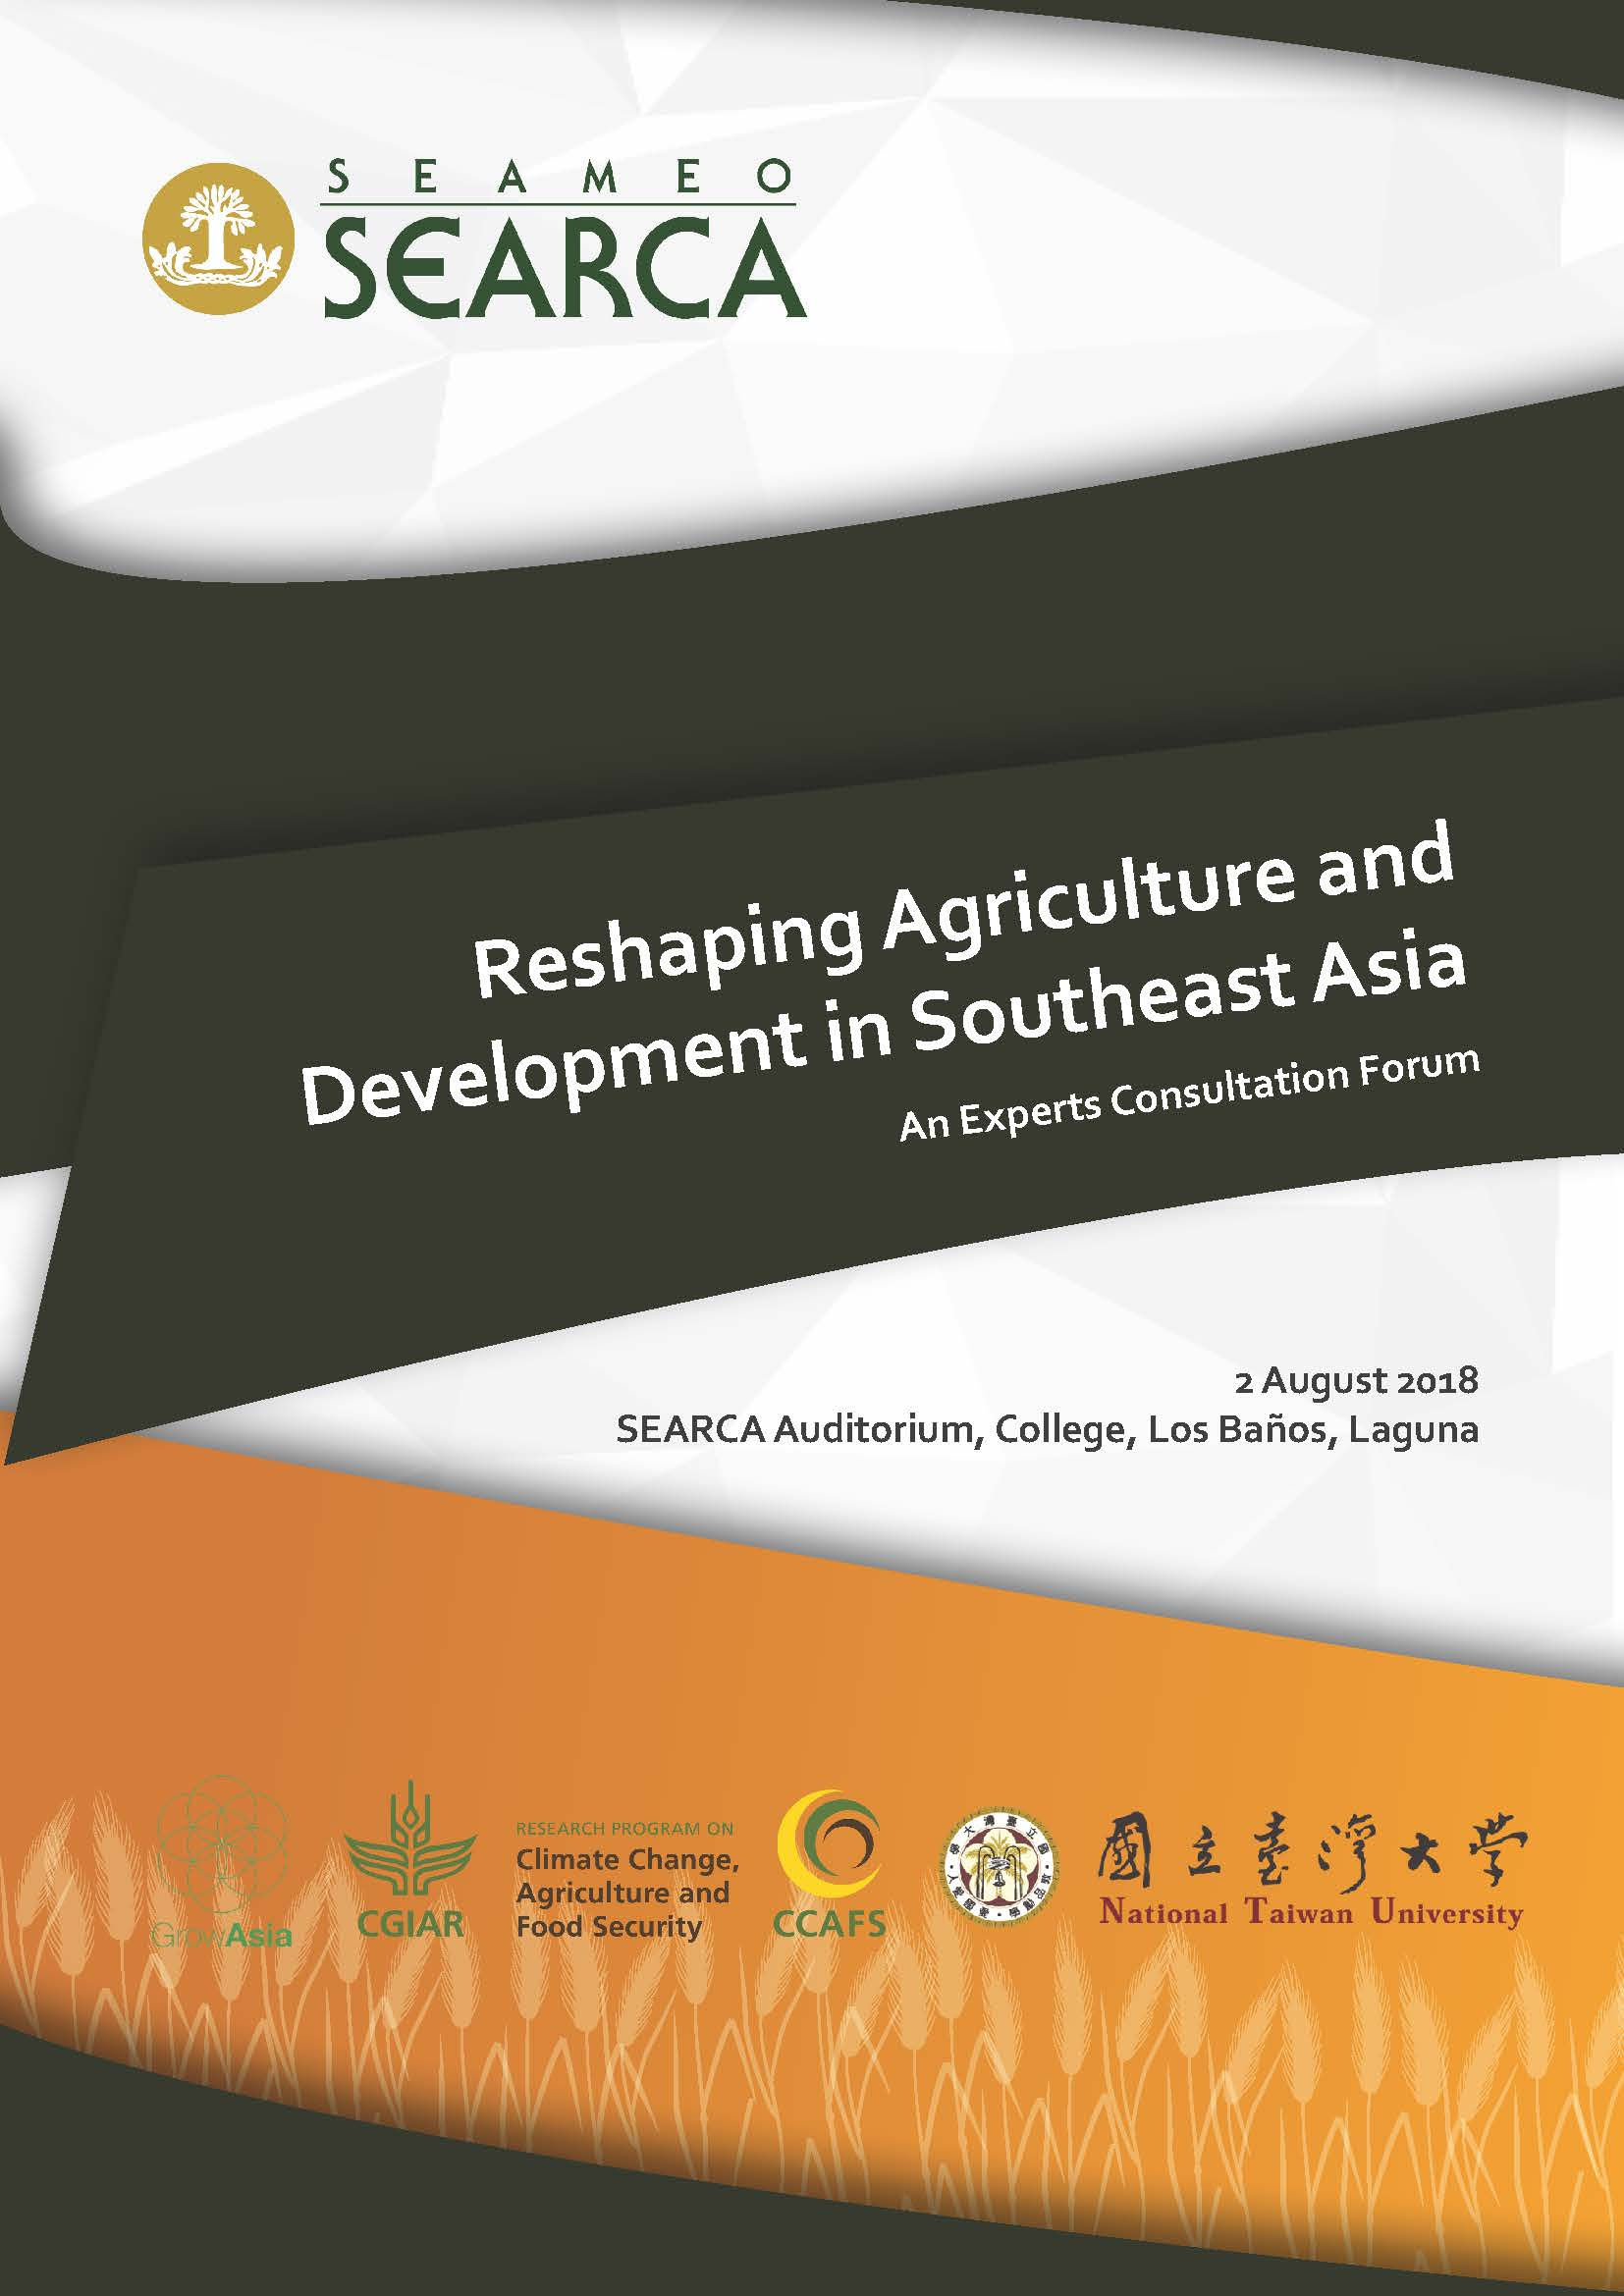 Reshaping Agriculture and Development in Southeast Asia: An Experts Consultation Forum